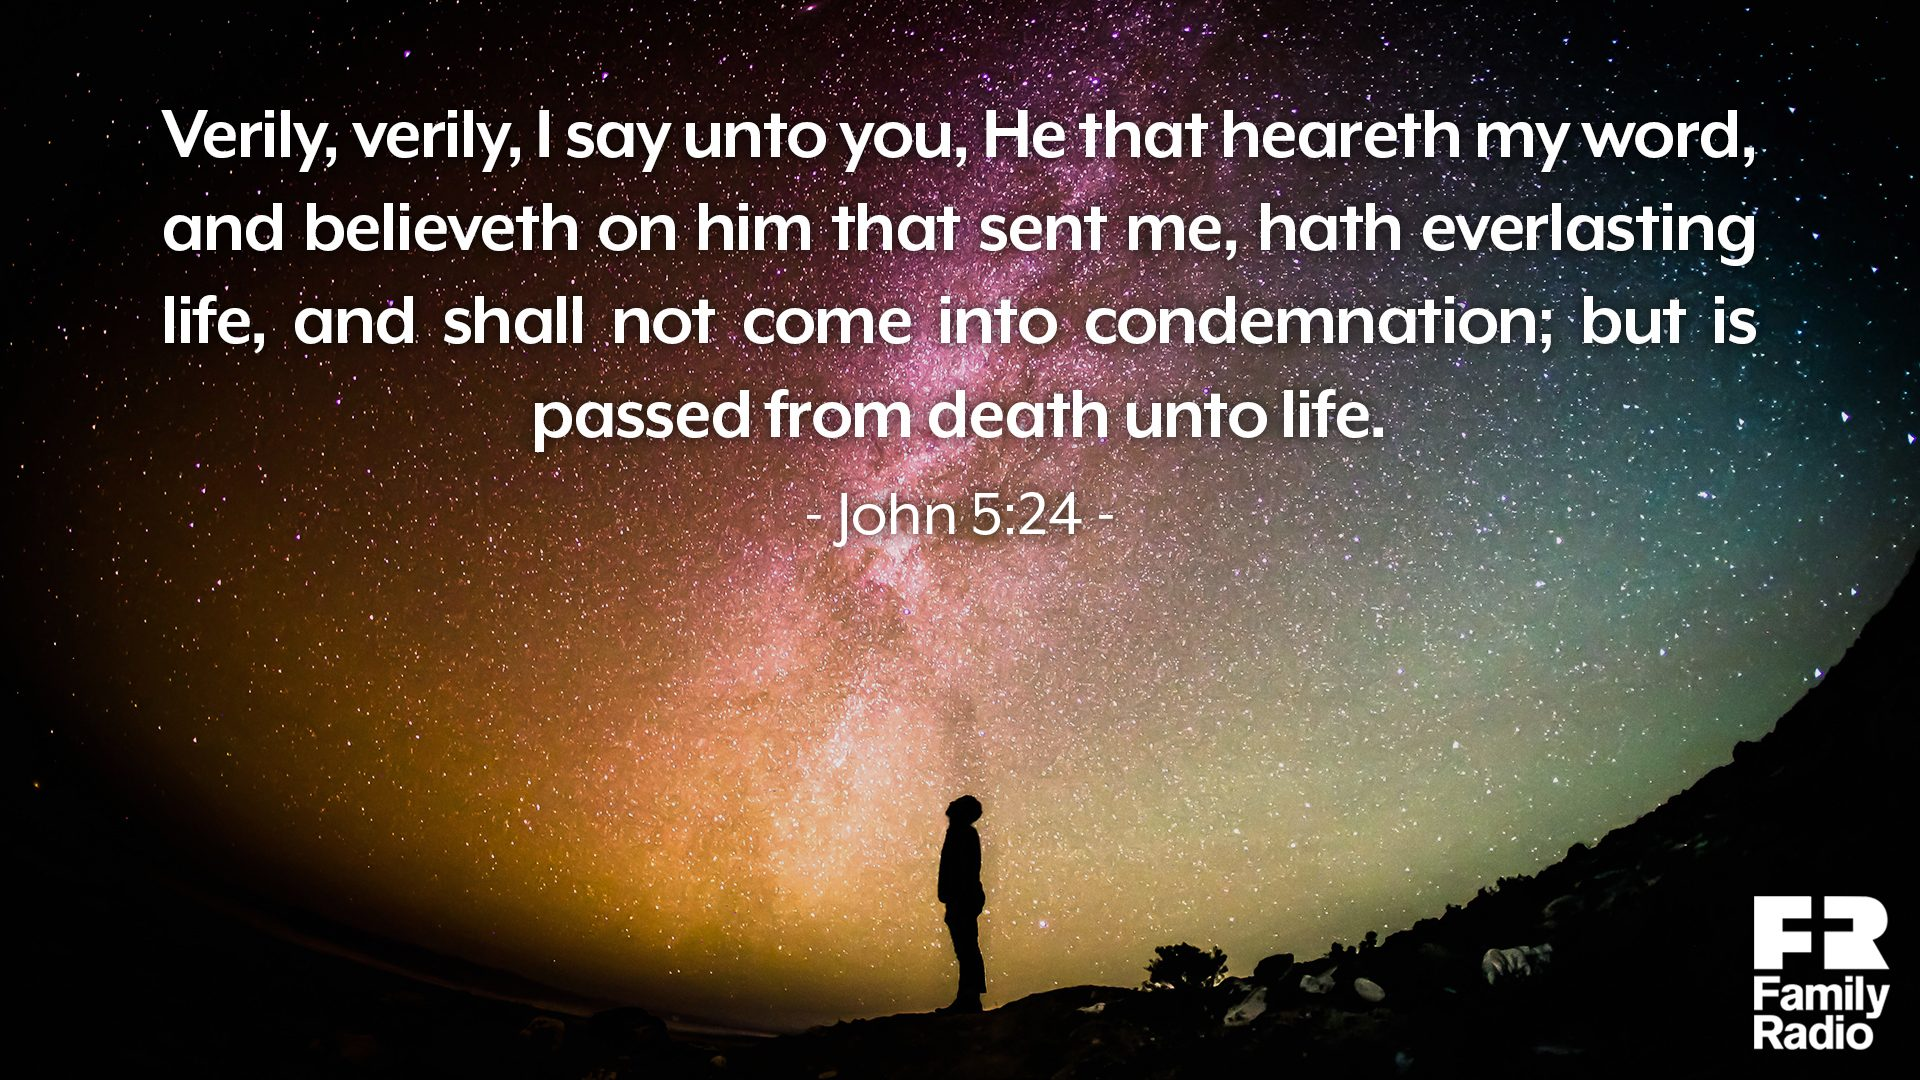 """Verily, verily, I say unto you, He that heareth my word, and believeth on him that sent me, hath everlasting life, and shall not come into condemnation; but is passed from death unto life."""